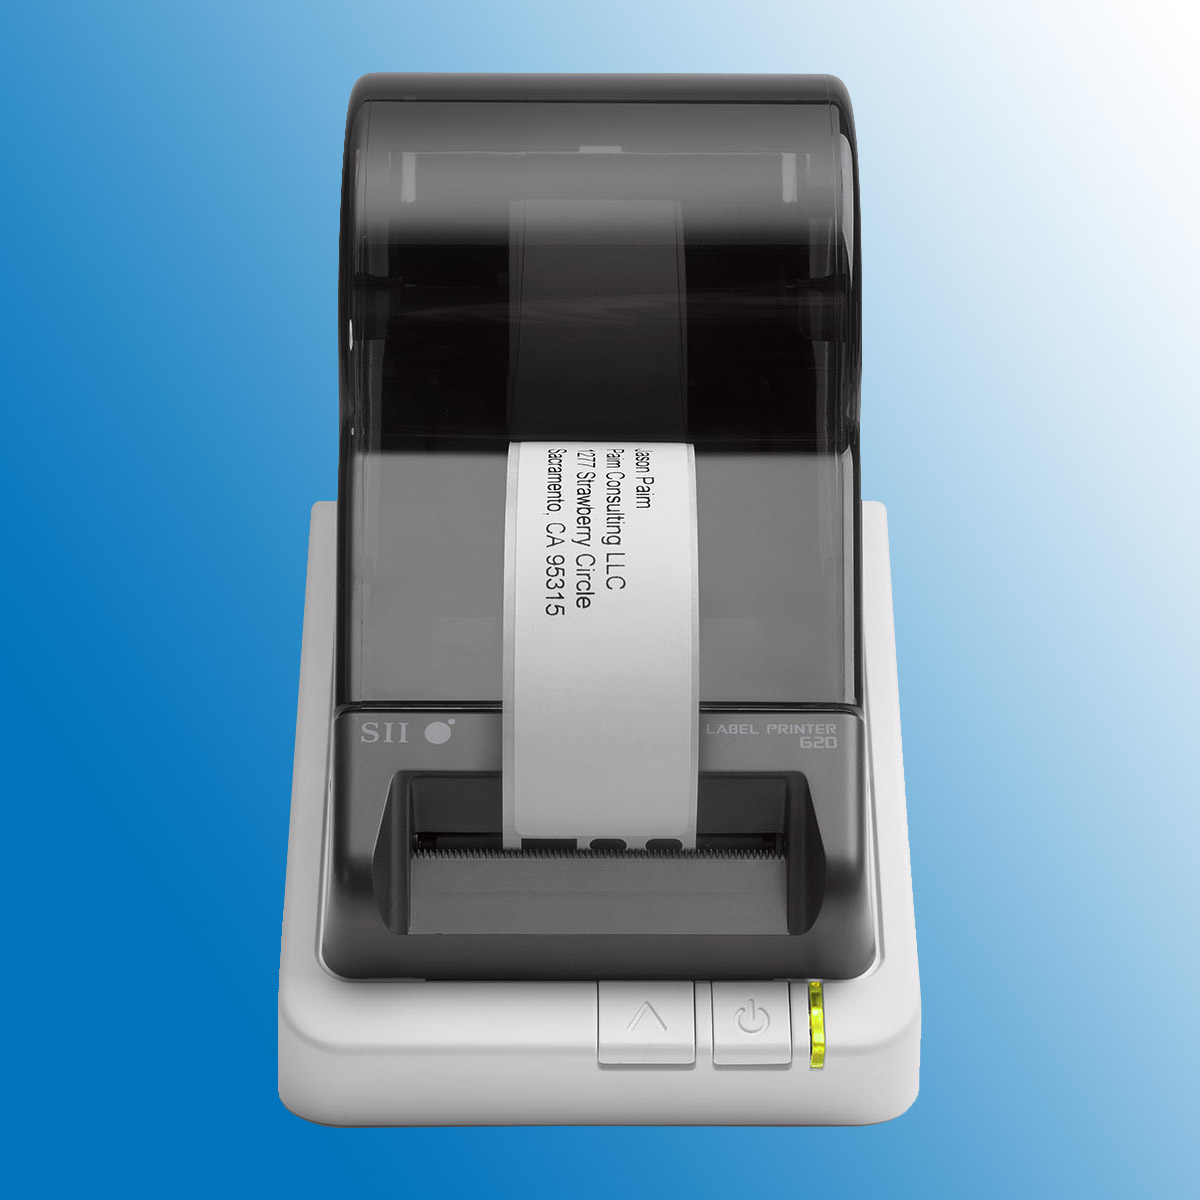 Seiko Instruments Smart Label Printer 220 Driver Windows 7